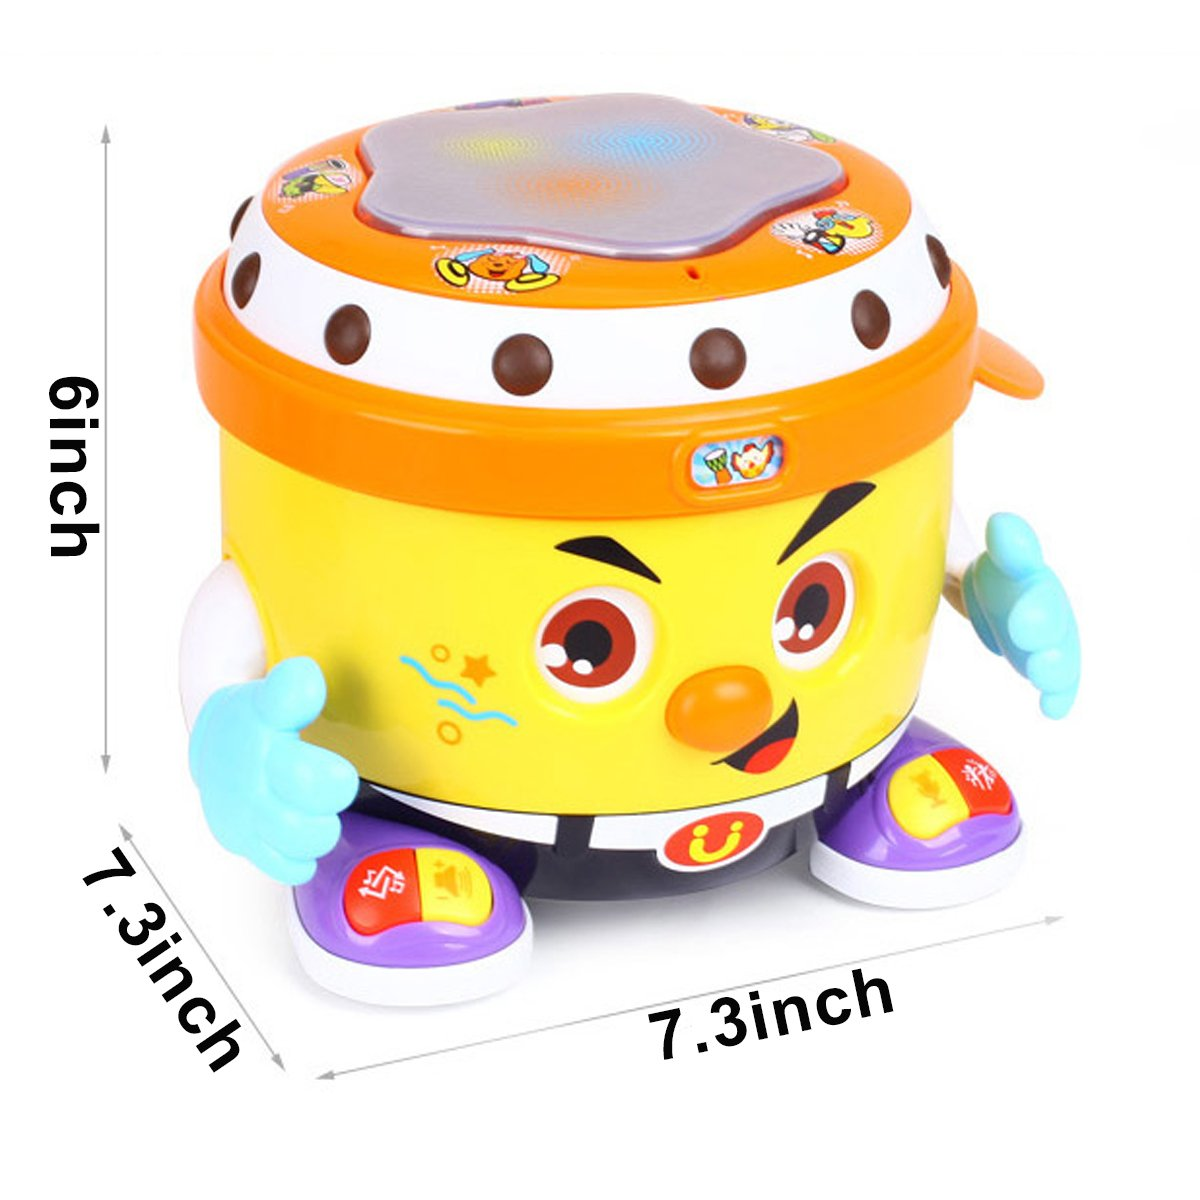 fe6f5477a Amazon.com  fisca Baby Musical Drum Toys